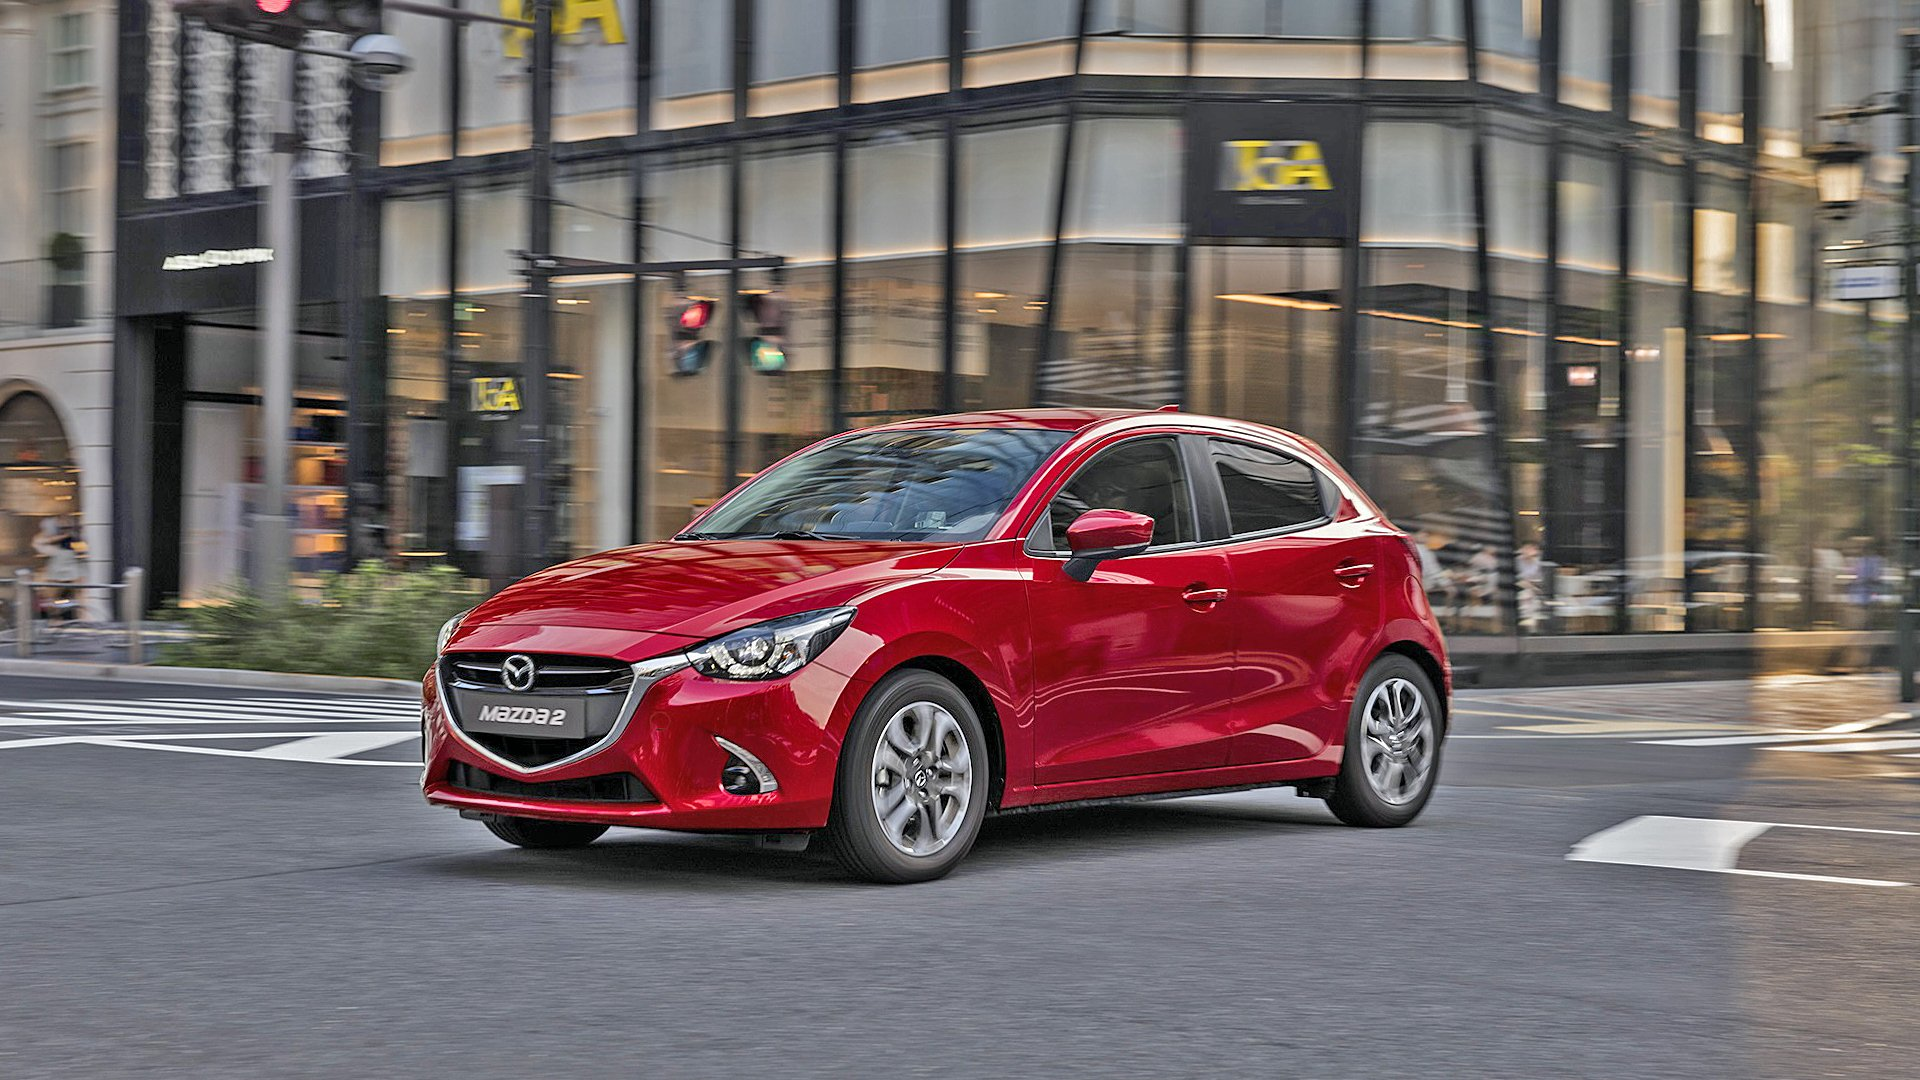 New 2019 Mazda 2 Wallpaper HD Desktop